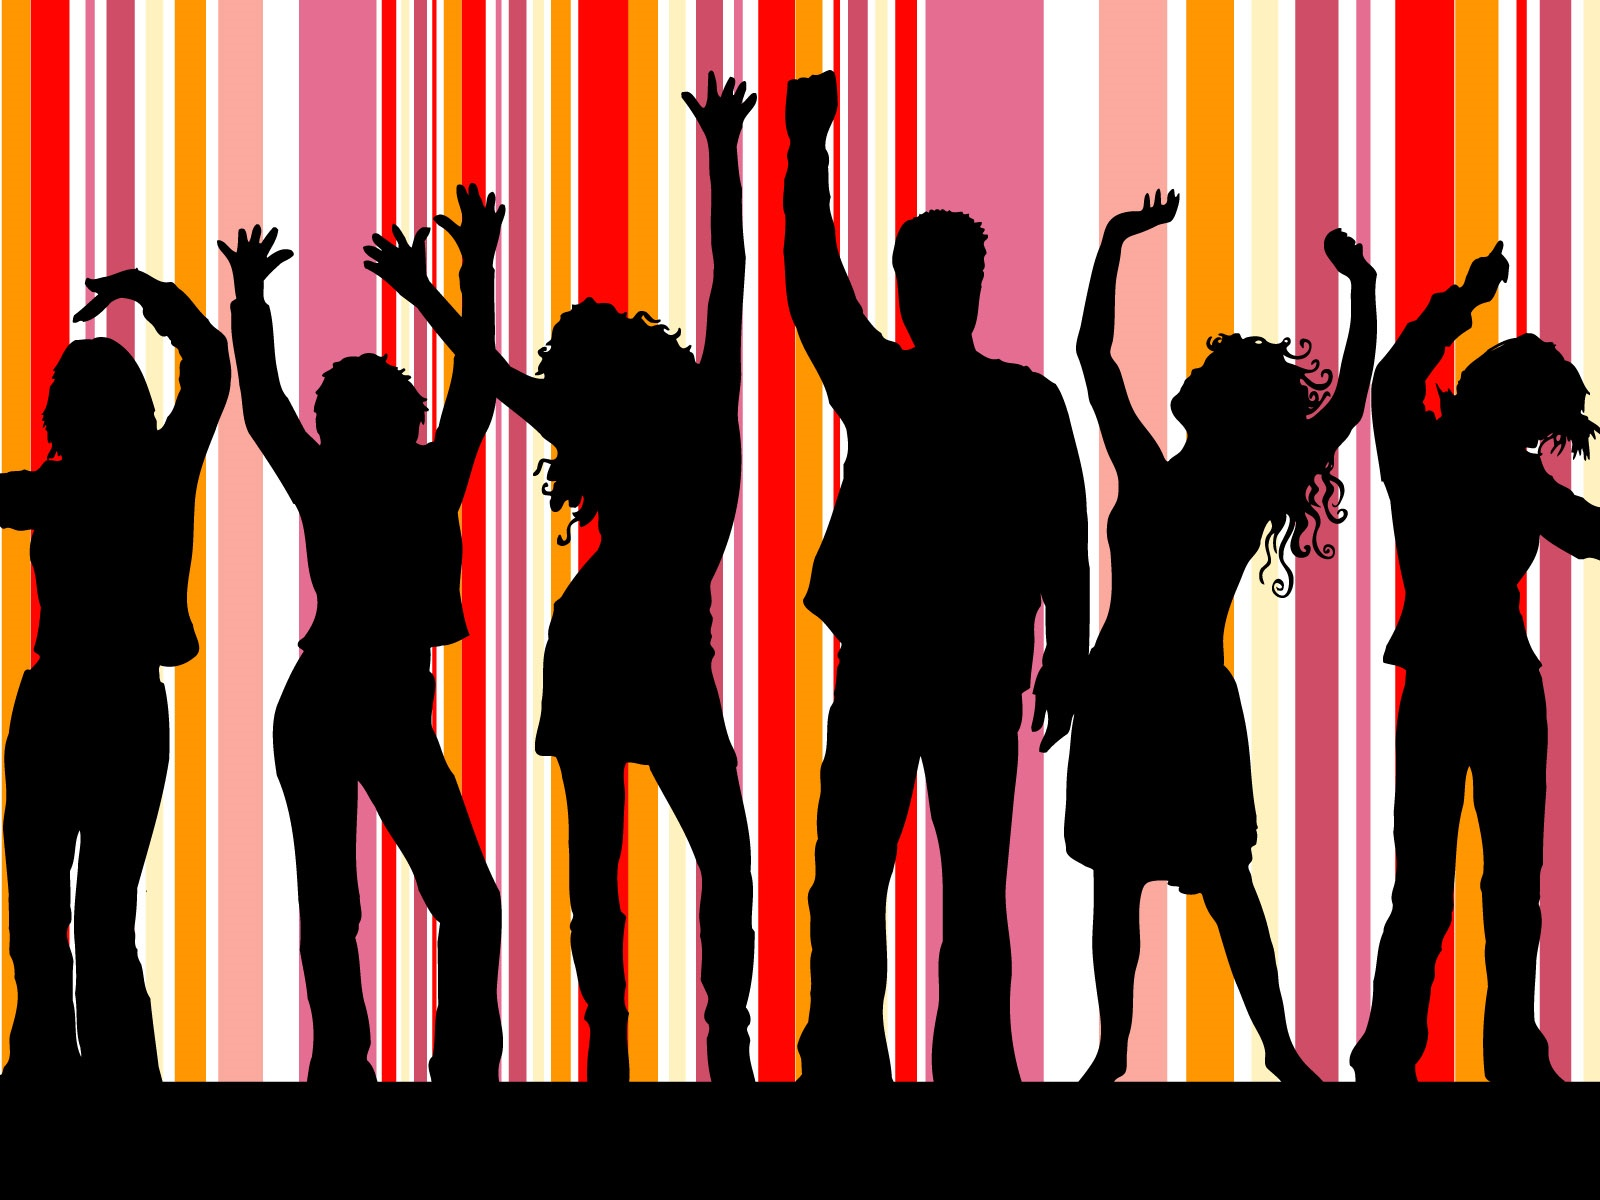 Dance people, striped background, vector design 1600x1200 wallpaper